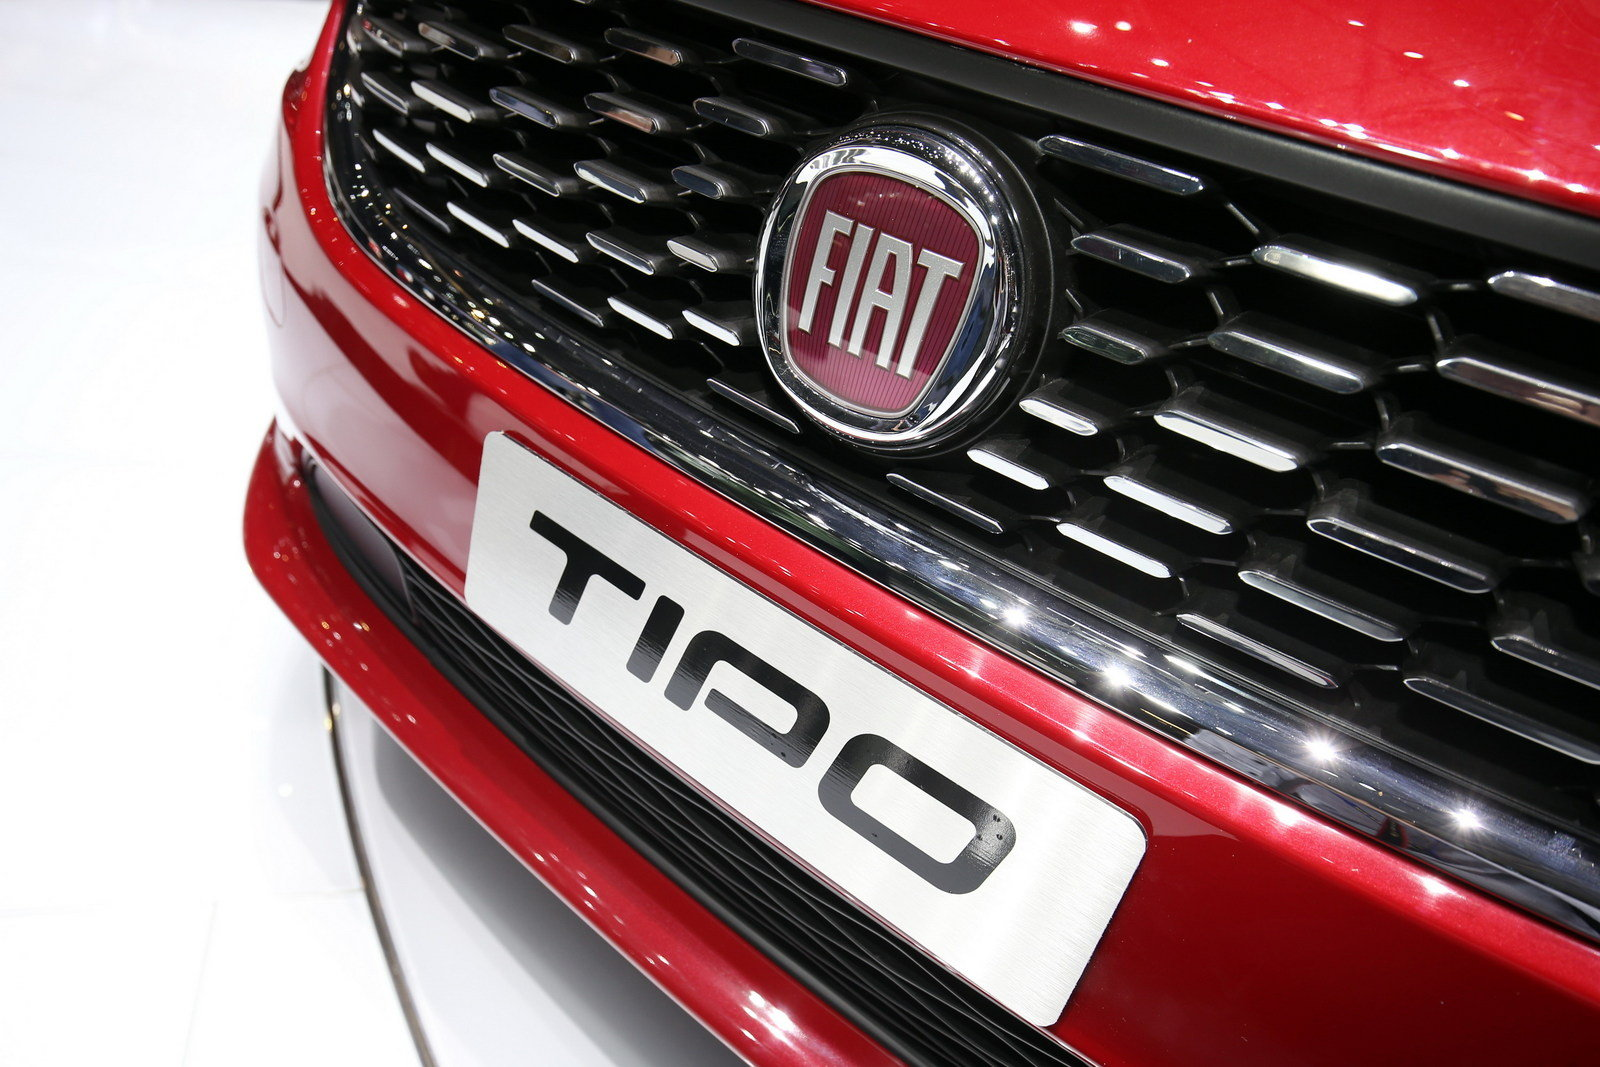 2017 fiat tipo hatchback picture 668062 car review top speed. Black Bedroom Furniture Sets. Home Design Ideas